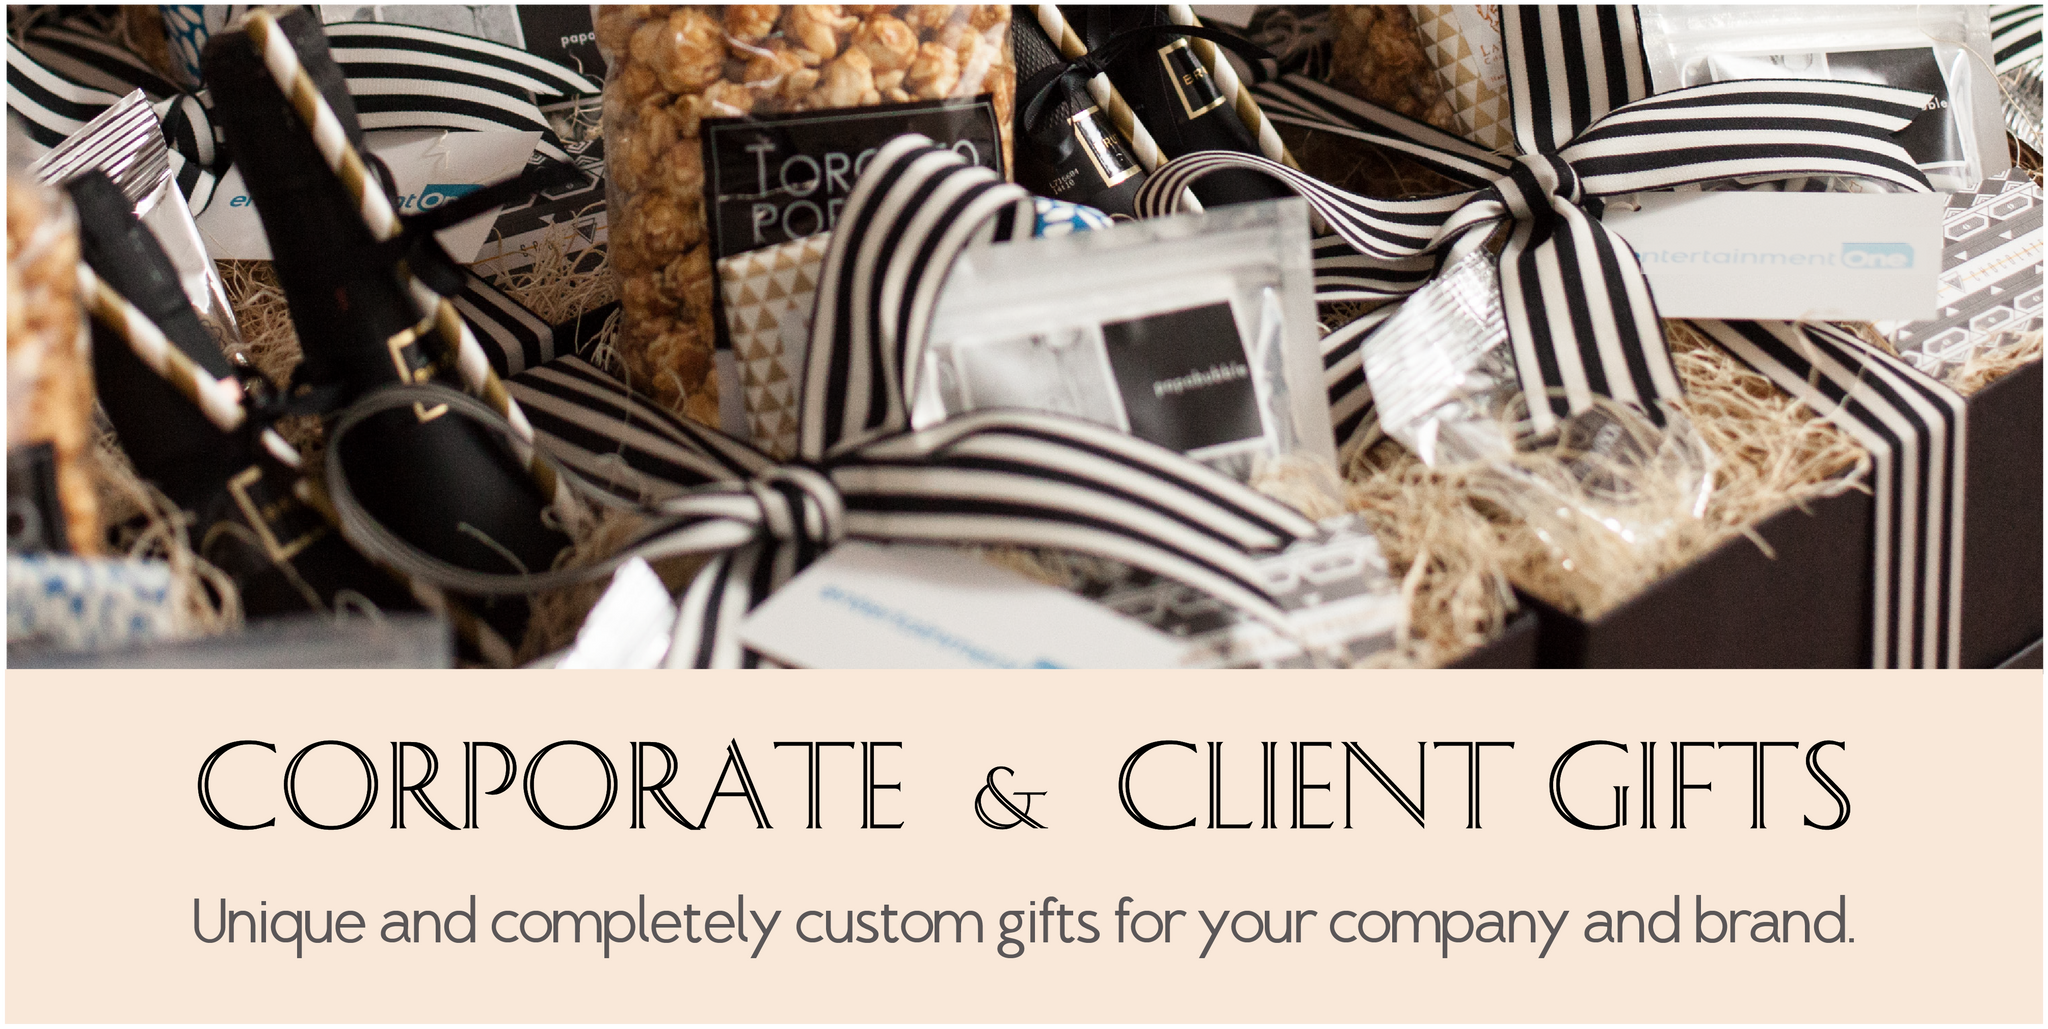 Toronto Corporate Gift Options and custom made giftbaskets for brands and businesses.